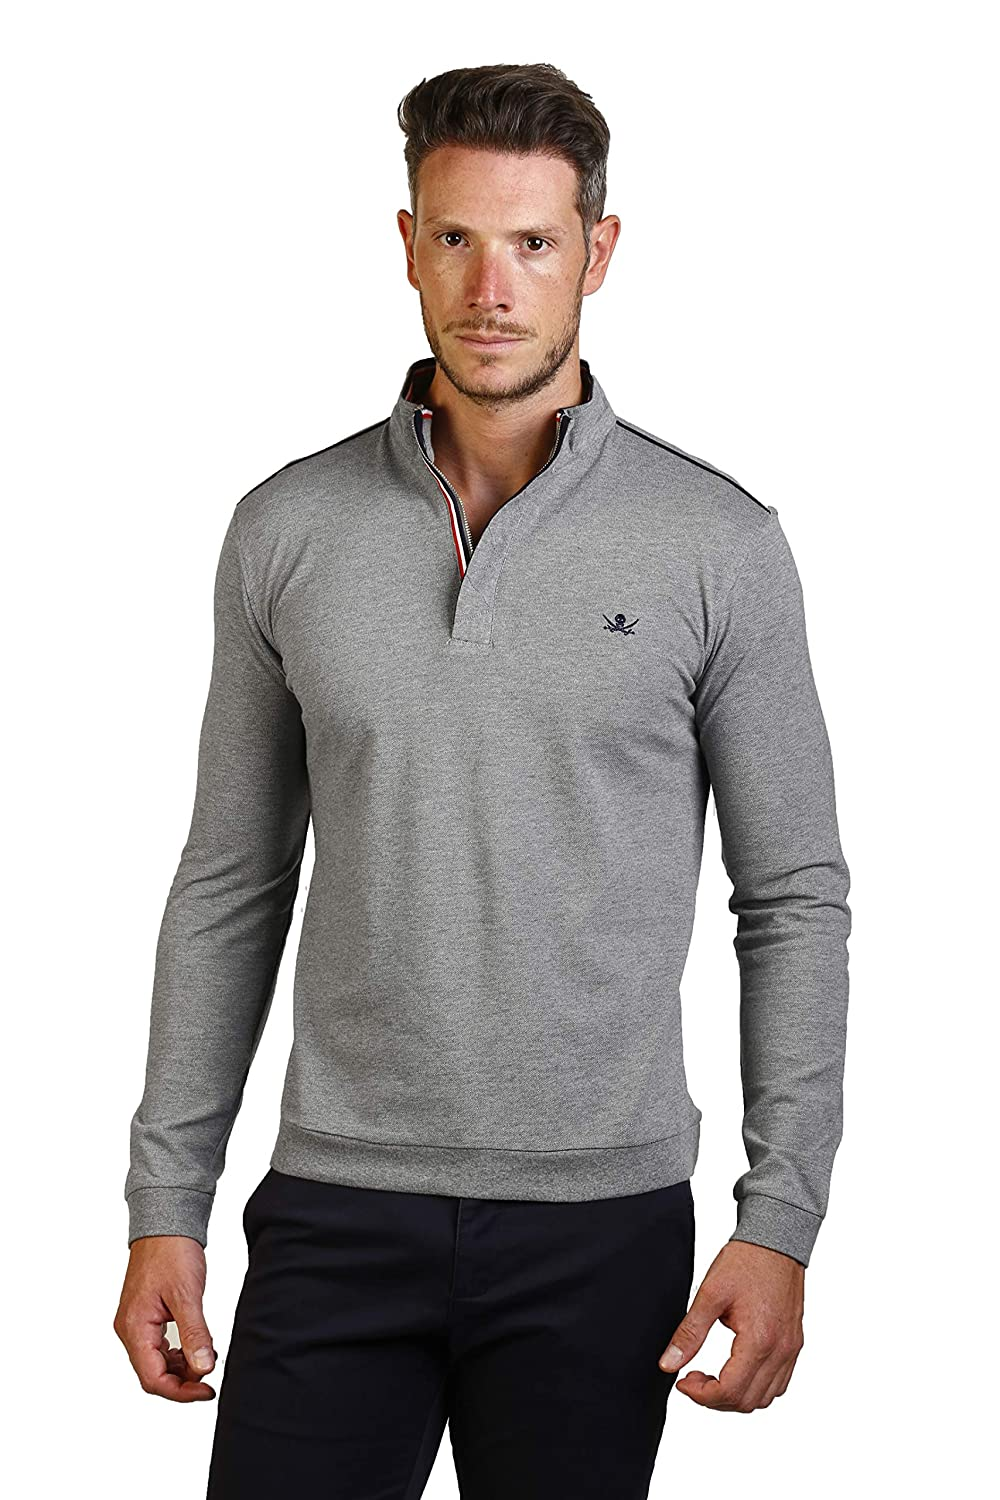 THE TIME OF BOCHA Polo Hombre JI1PHIERRO-Gris Talla M: Amazon.es ...